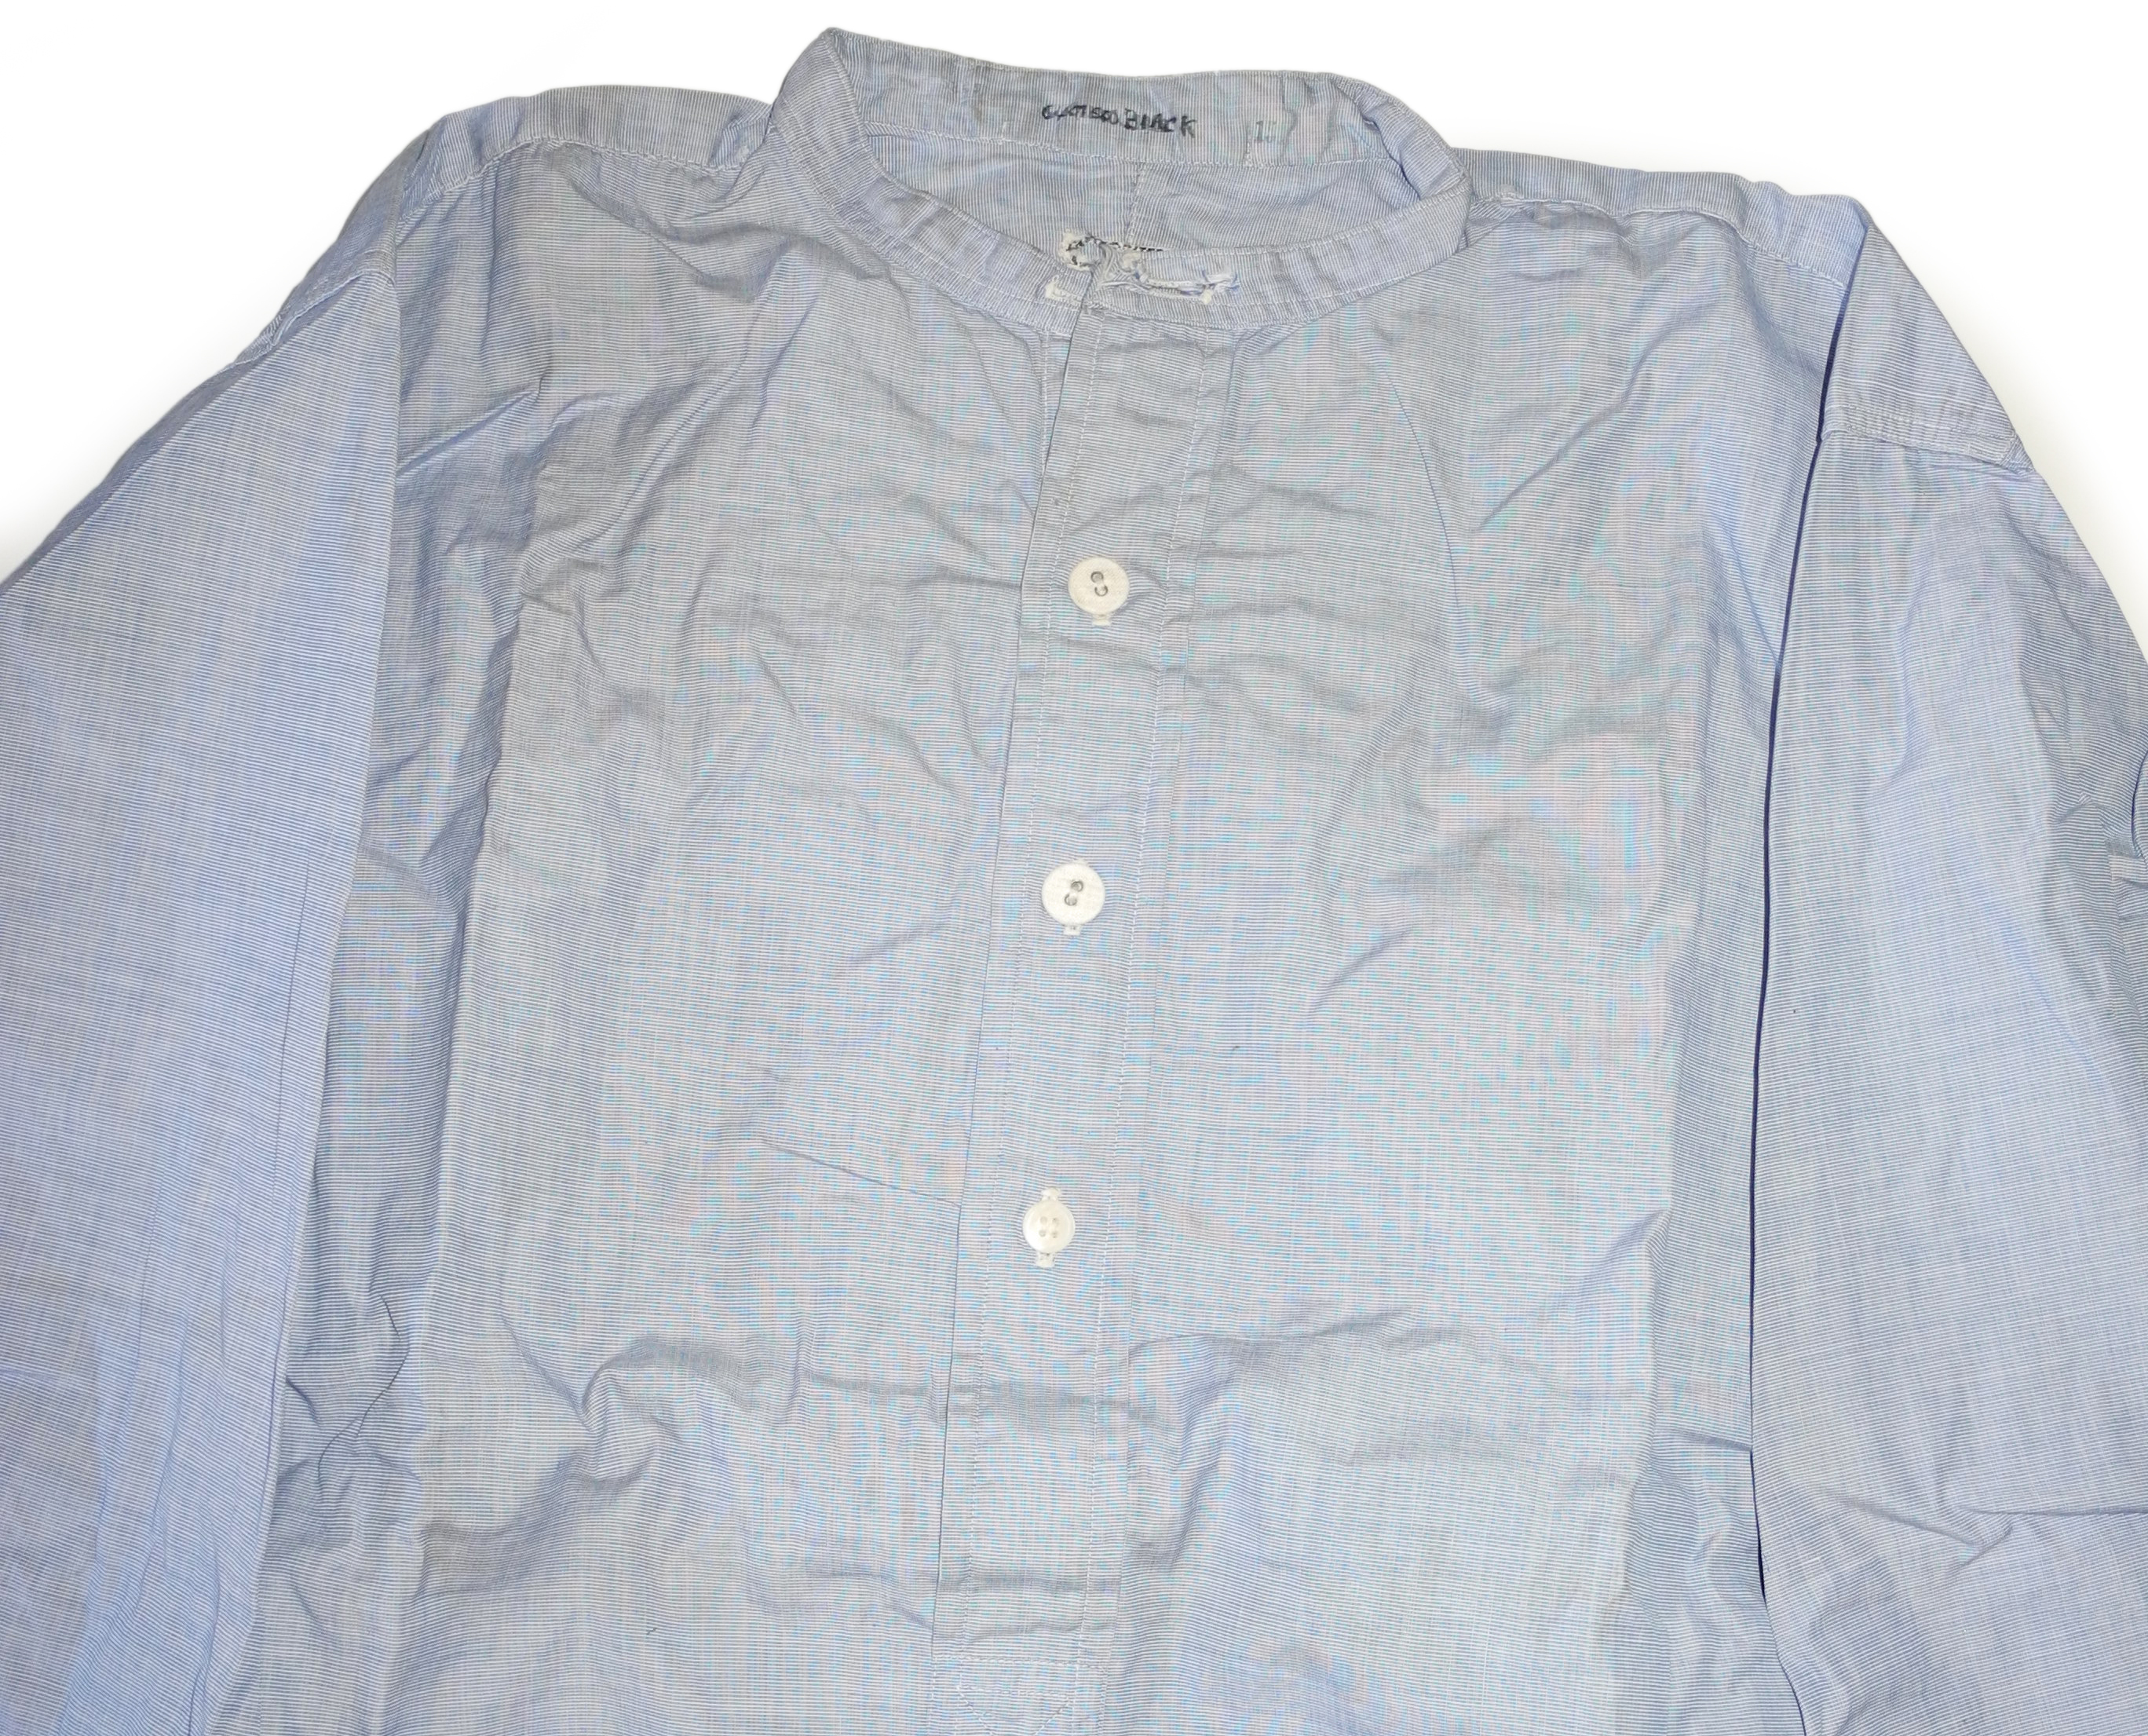 RAF officer's shirt + collar